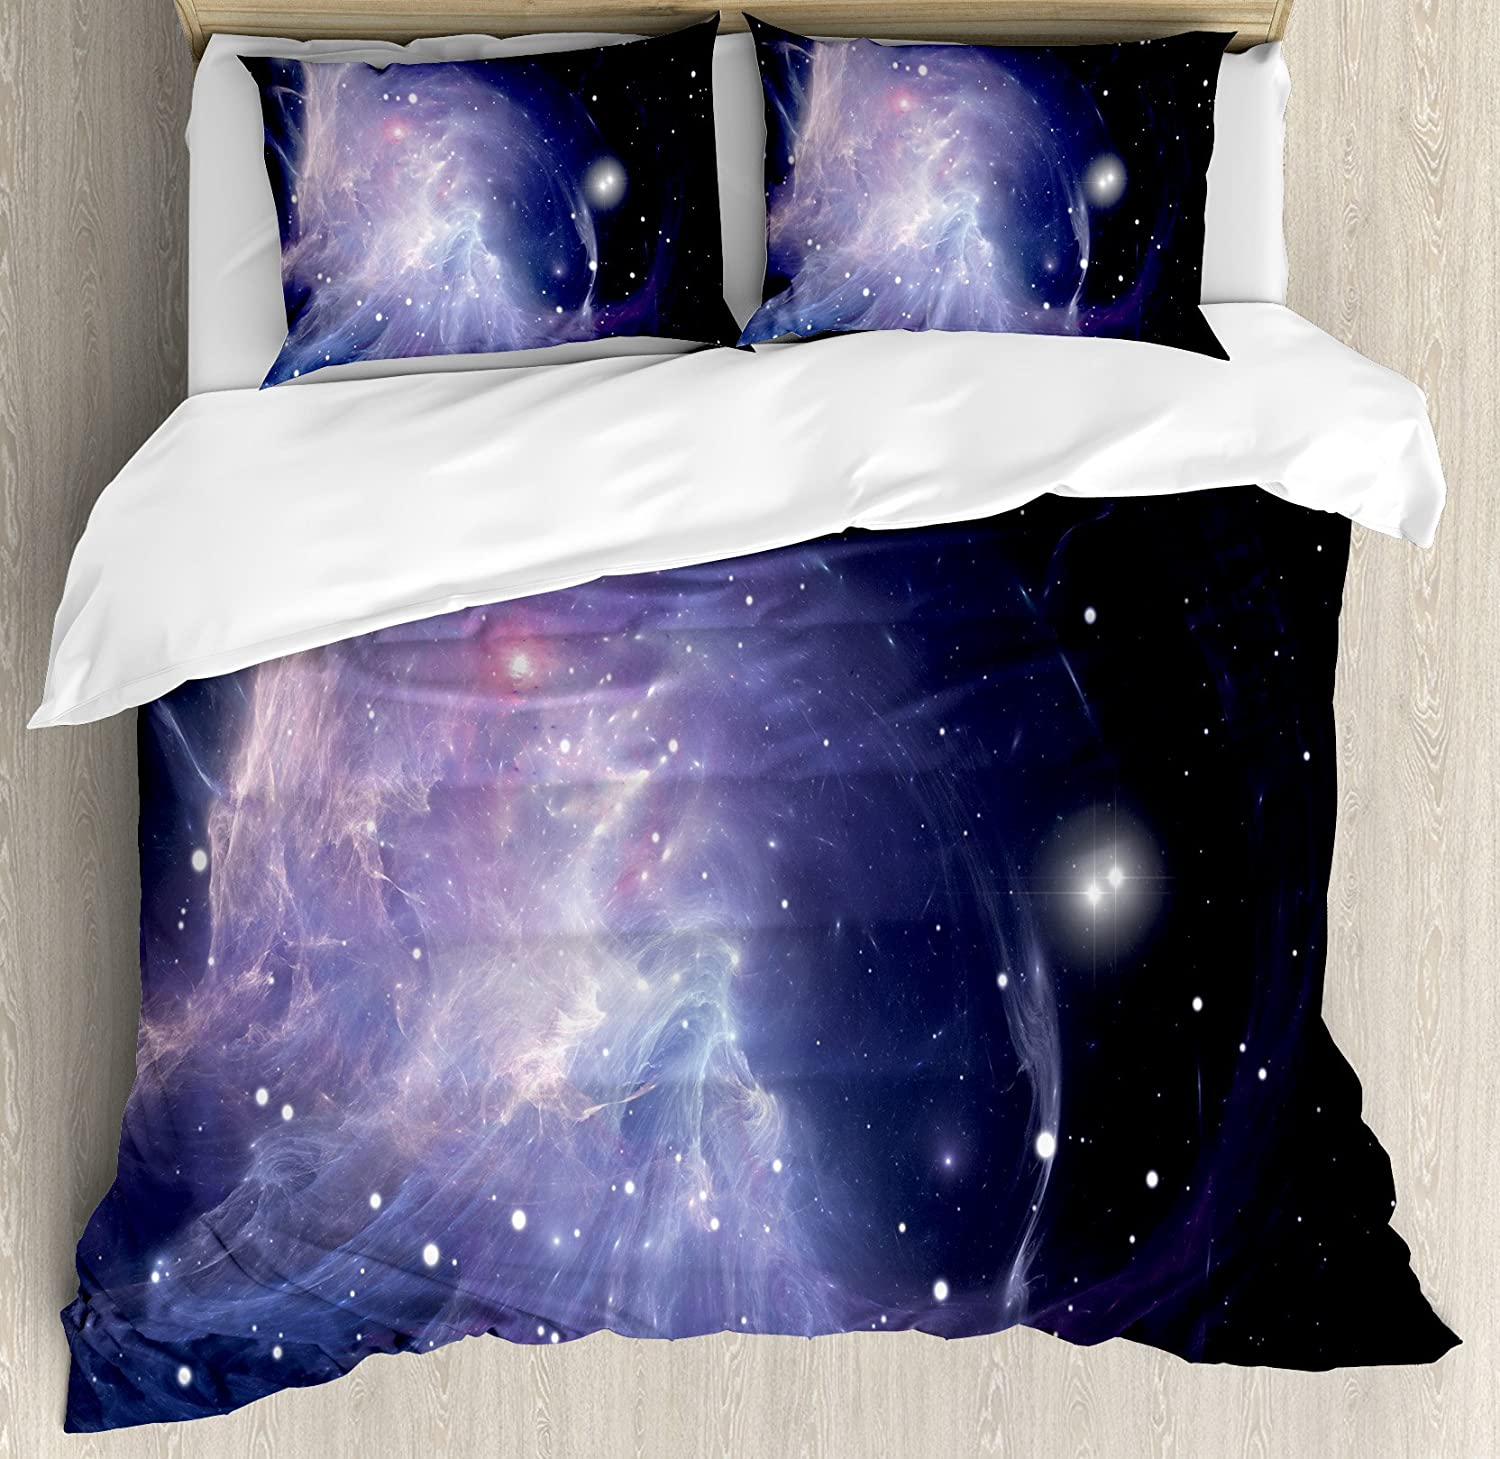 Space Nebula in Galaxy Complex Energy Movements Cosmos Theme Inspiring Print Navy Purple Decorative 3 Piece Bedding Set with 2 Pillow Shams Ambesonne Outer Space Duvet Cover Set Queen Size